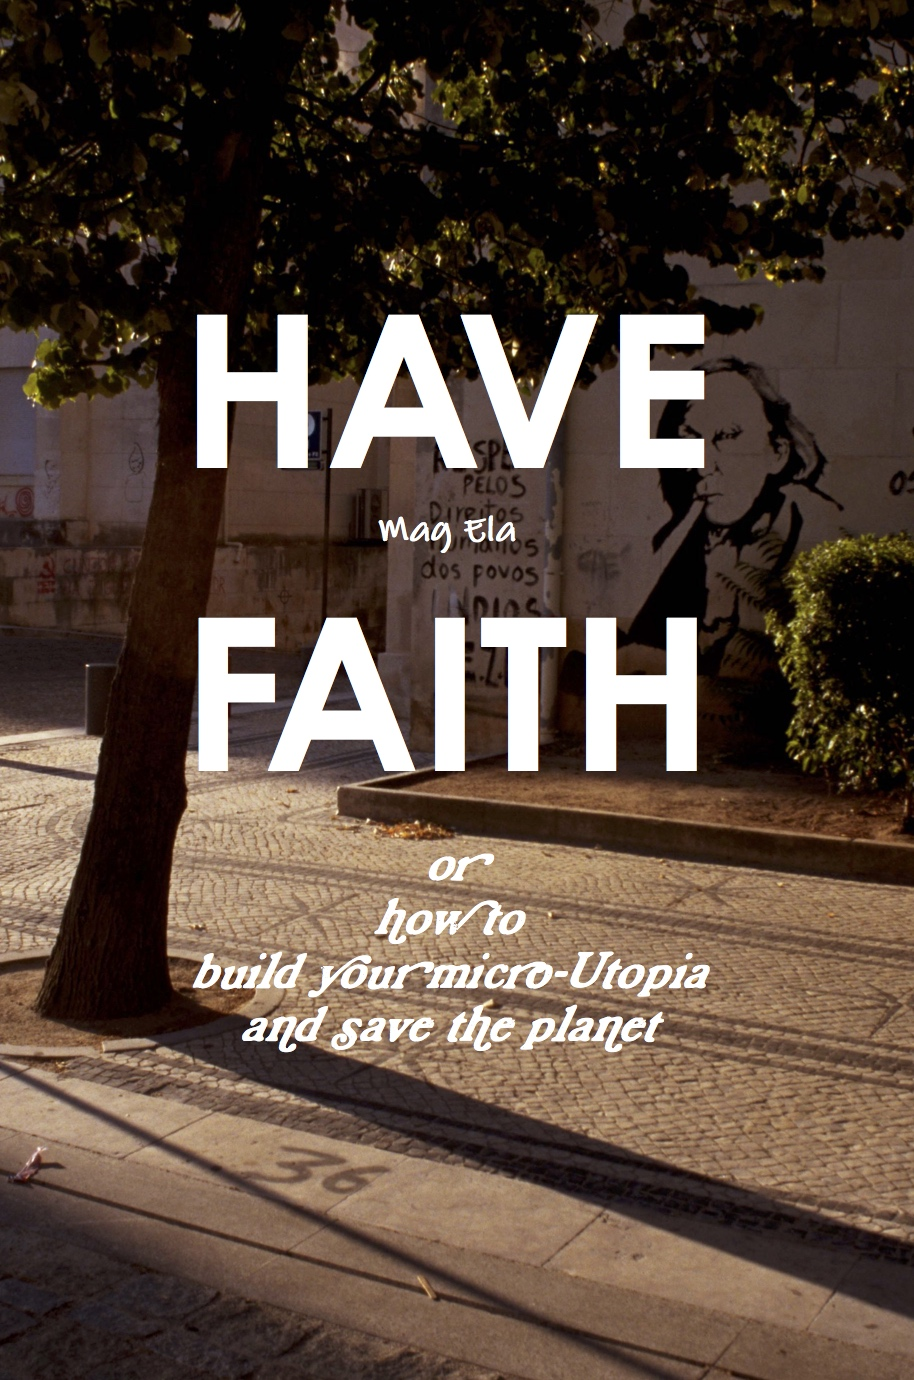 Have Faith cover.jpg